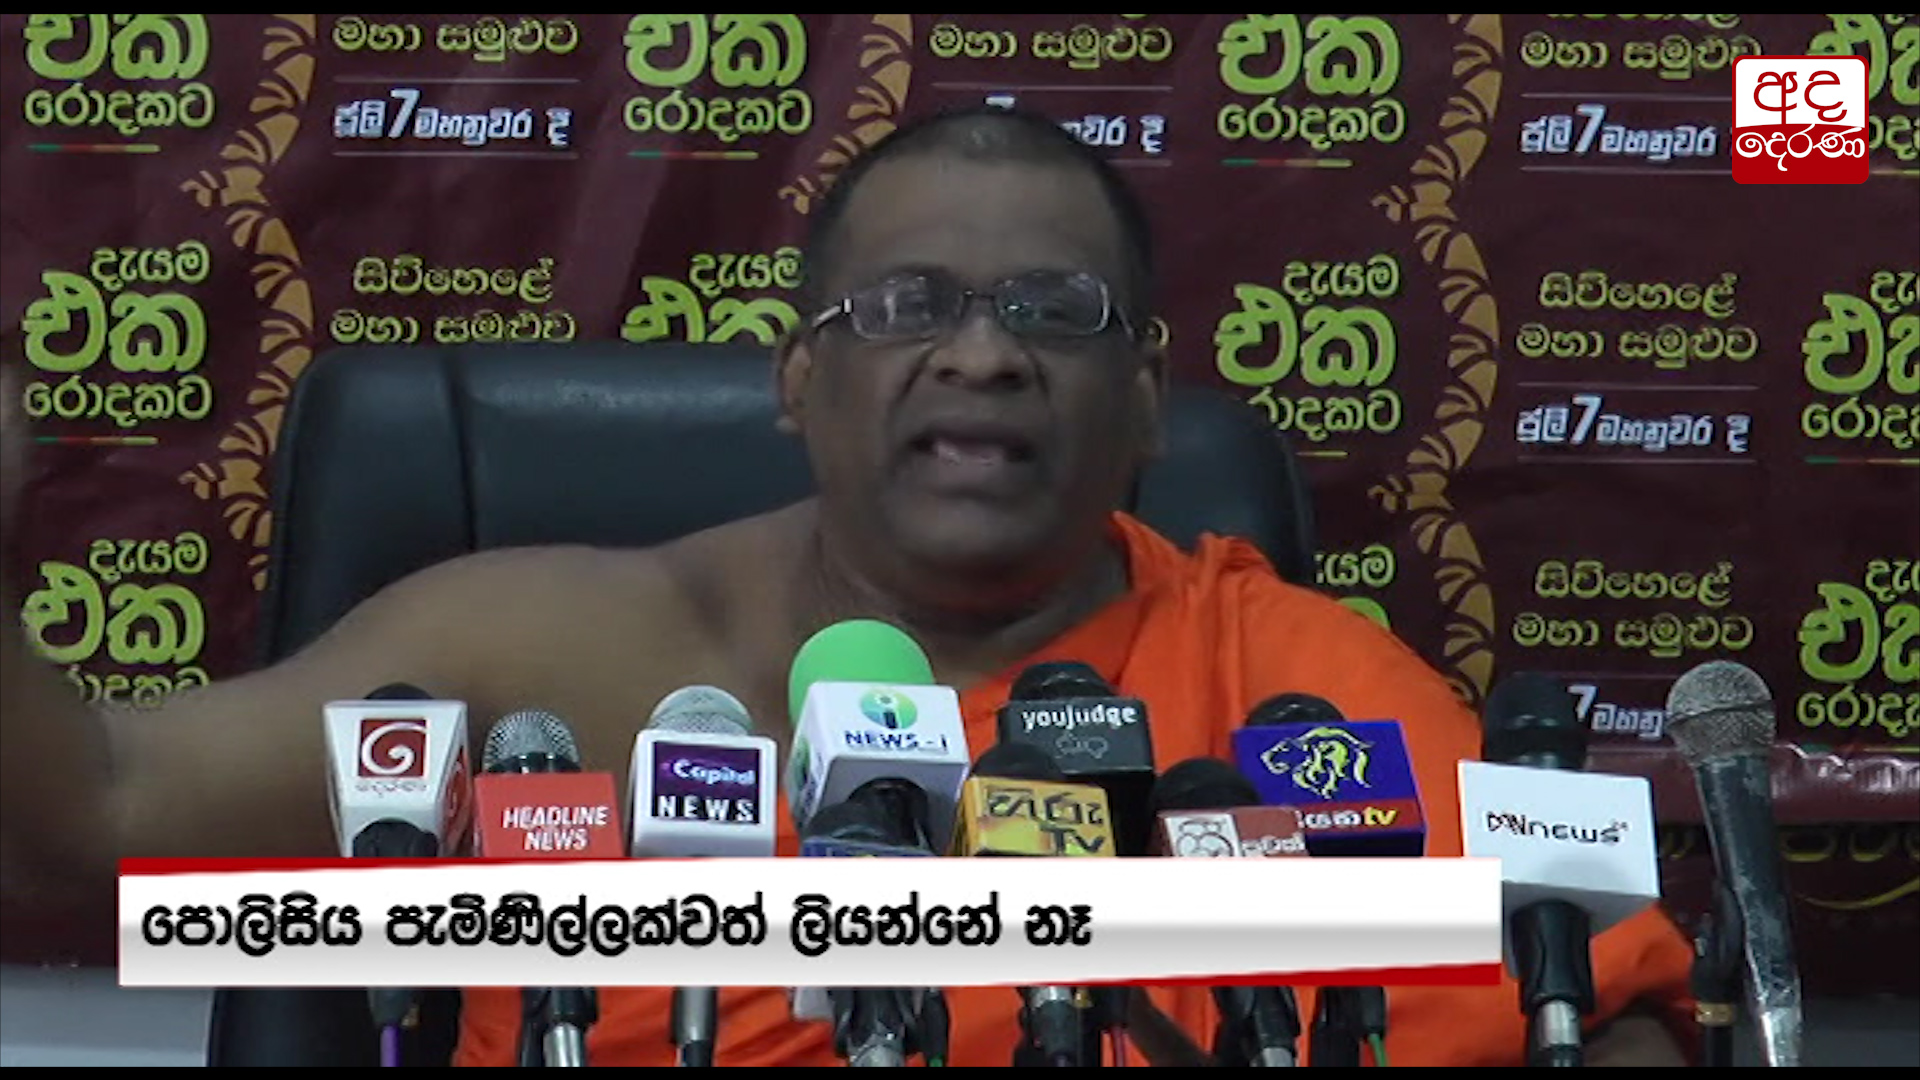 Police officers have become millionaires after Easter attacks - Gnanasara Thero